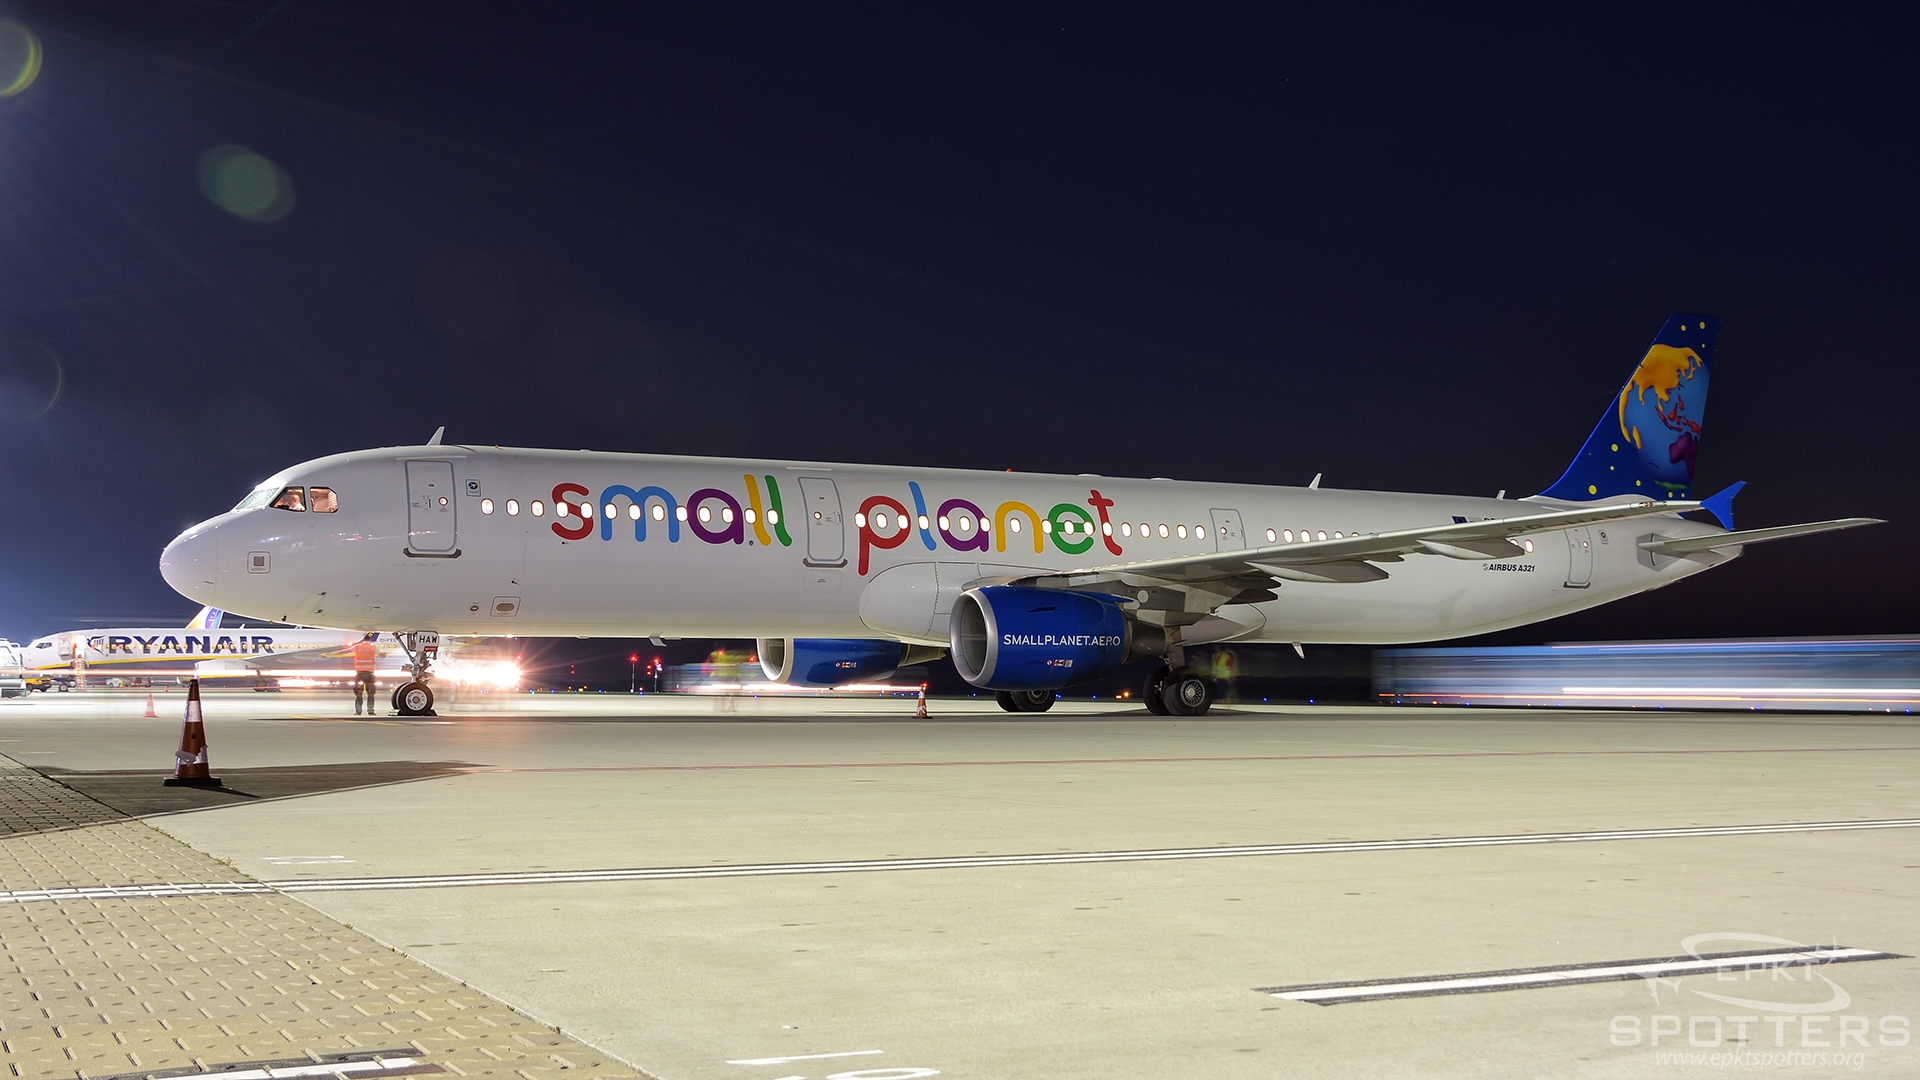 SP-HAW - Airbus A321 -211 (Small Planet Airlines) / Pyrzowice - Katowice Poland [EPKT/KTW]